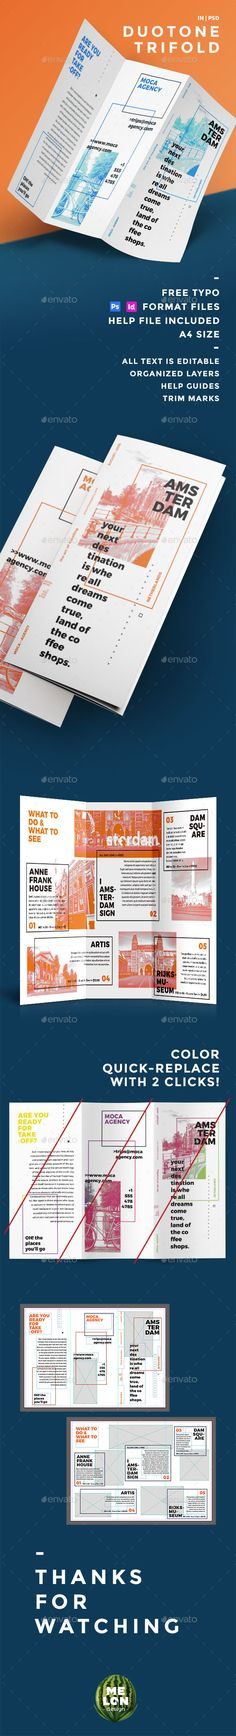 Andalucia Trifold Brochure template, Brochures and Corporate - advertising brochure template